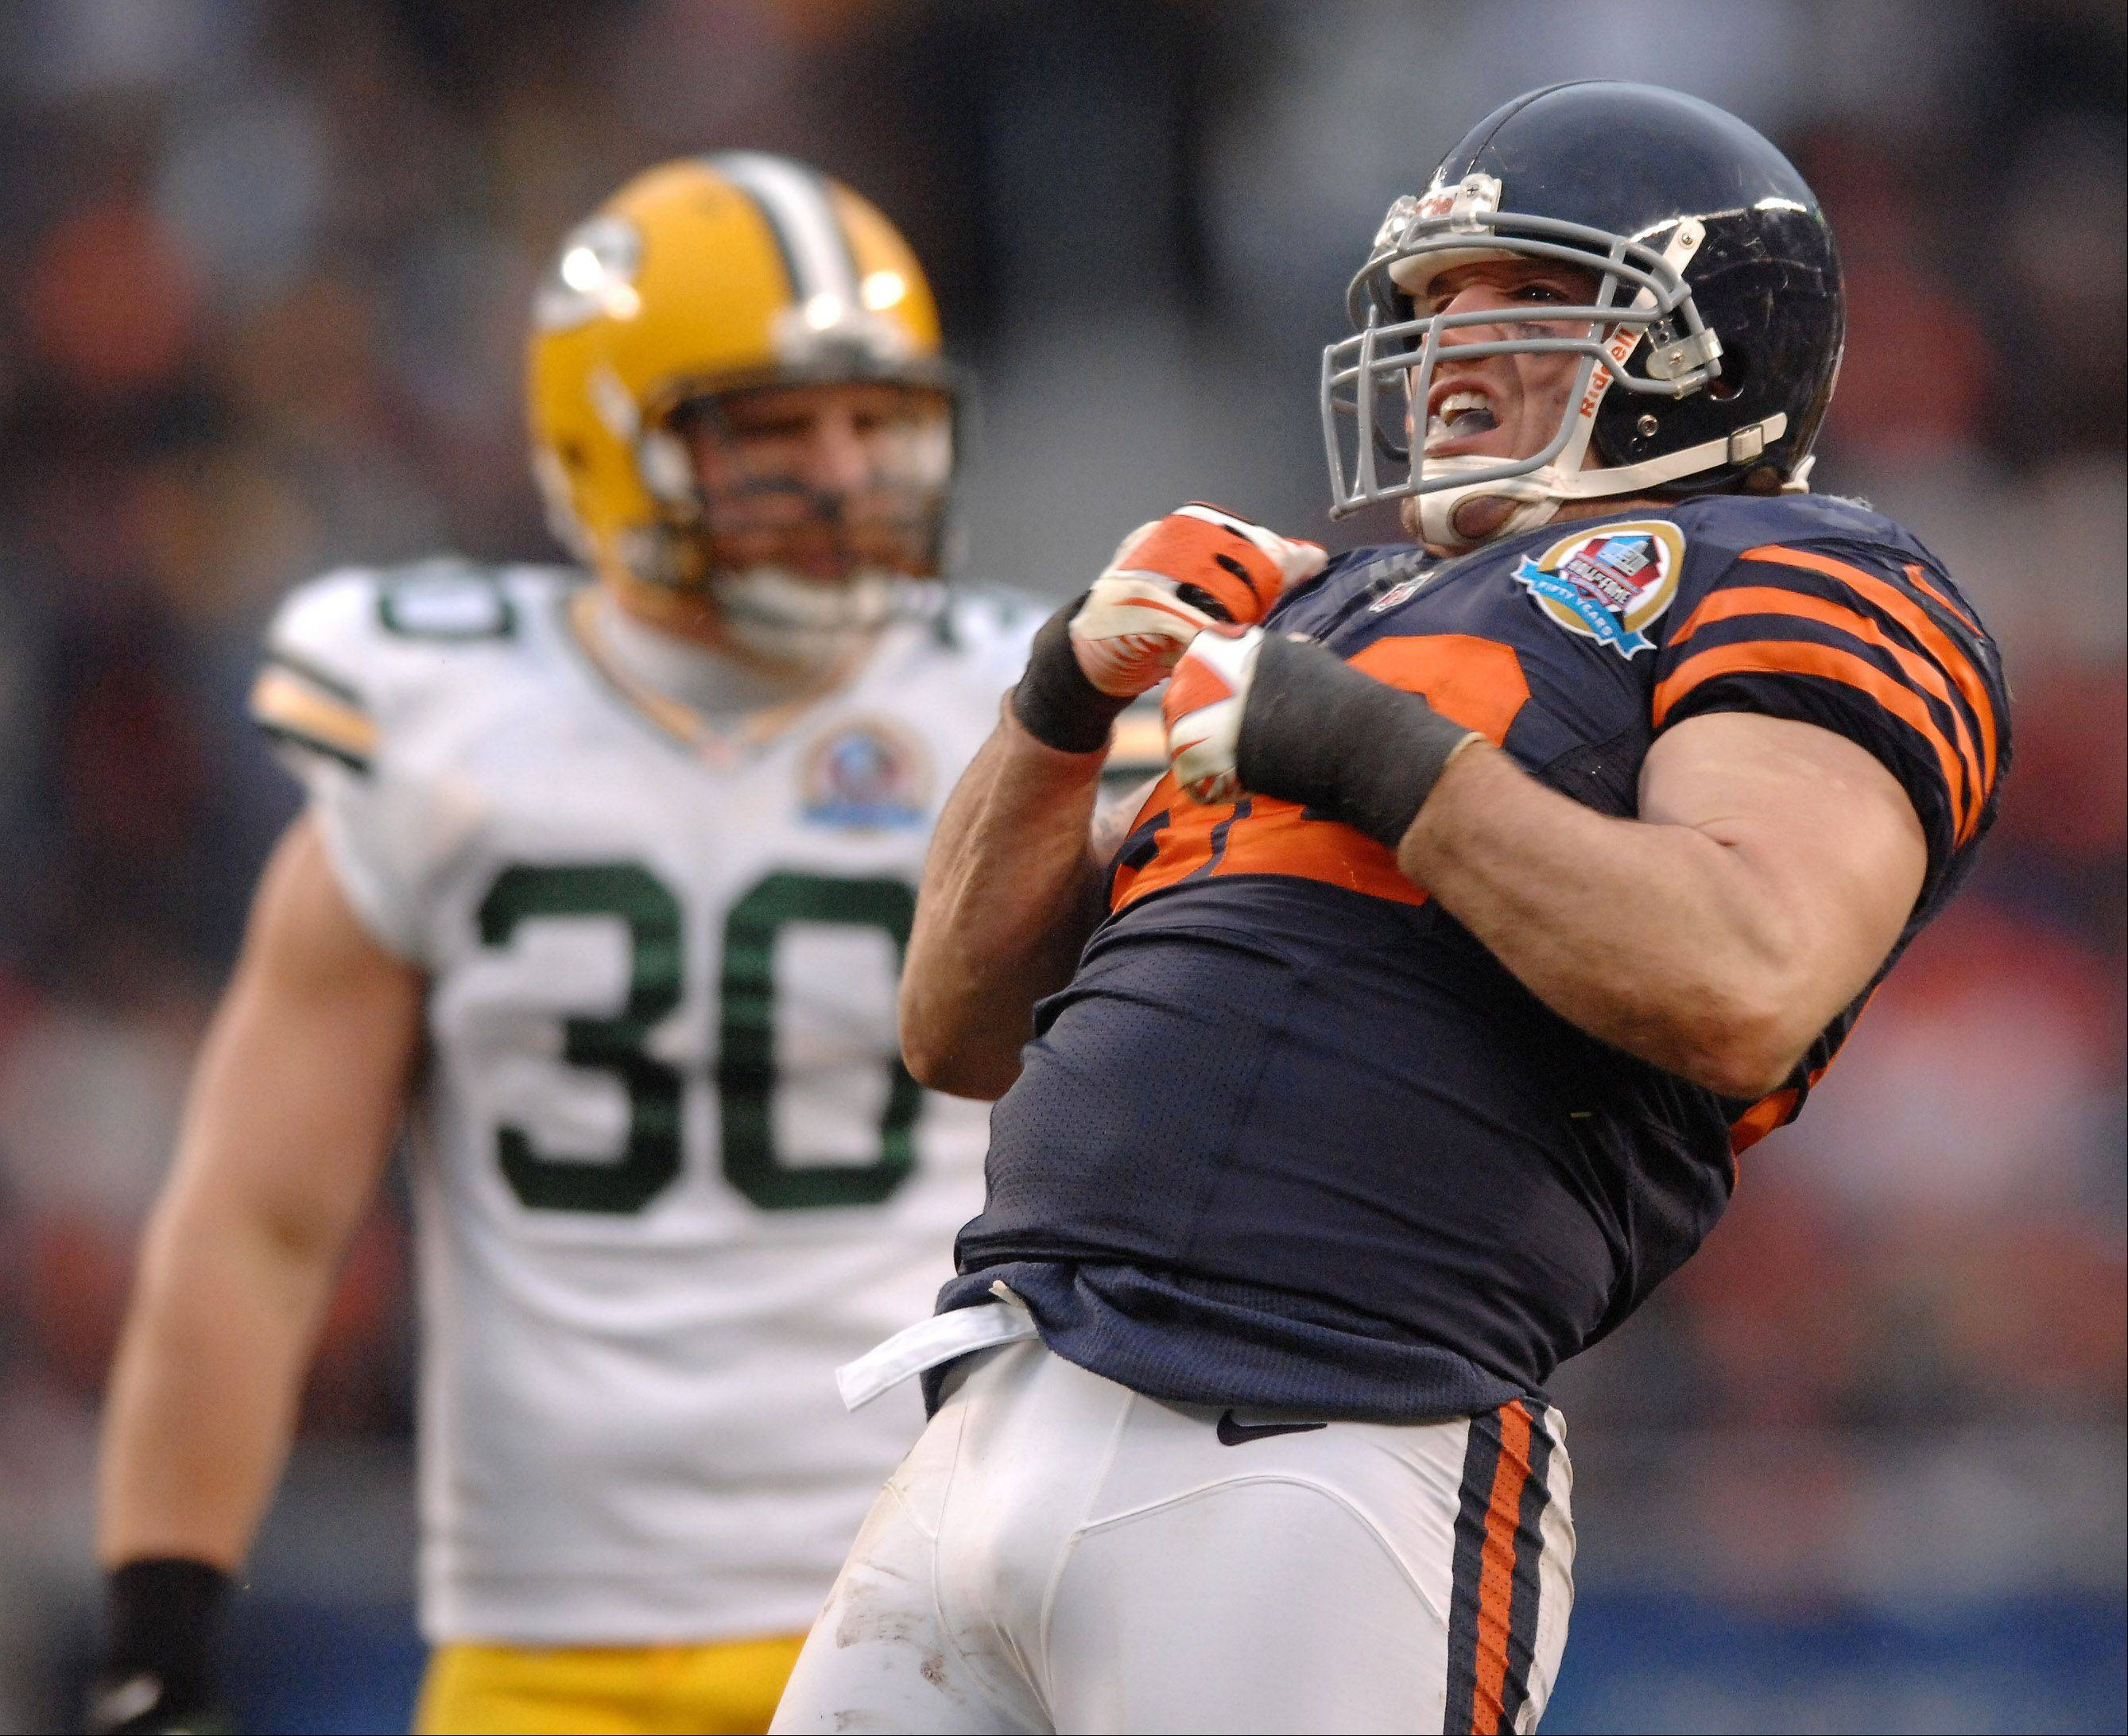 Rick West/rwest@dailyherald.comBears linebacker Blake Costanzo celebrates during action at Soldier Field.